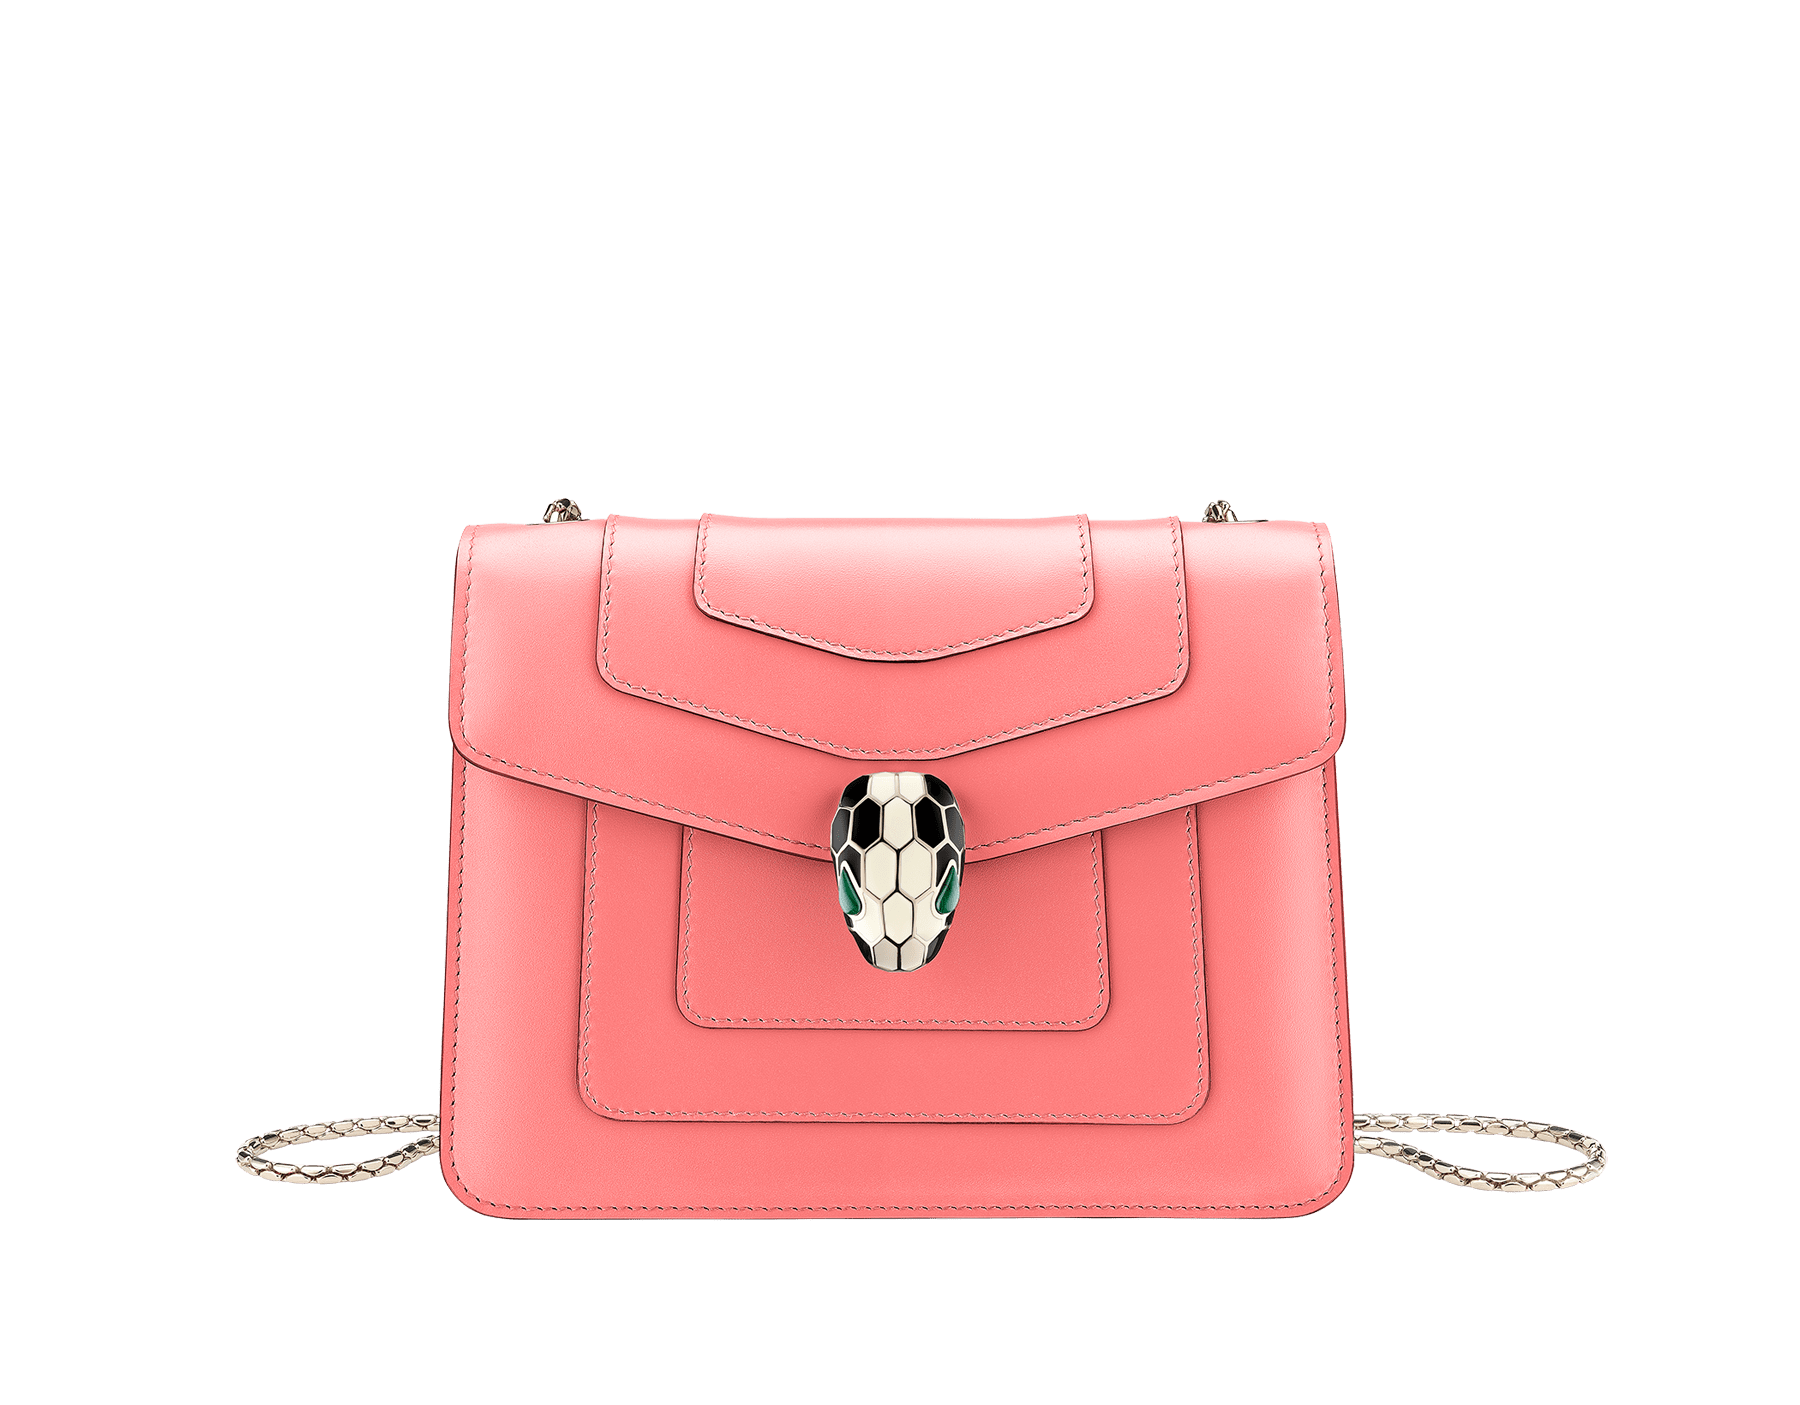 """Serpenti Forever"" crossbody bag in silky coral calf leather. Iconic snakehead closure in light gold plated brass enriched with black and white enamel and green malachite eyes. 288700 image 1"